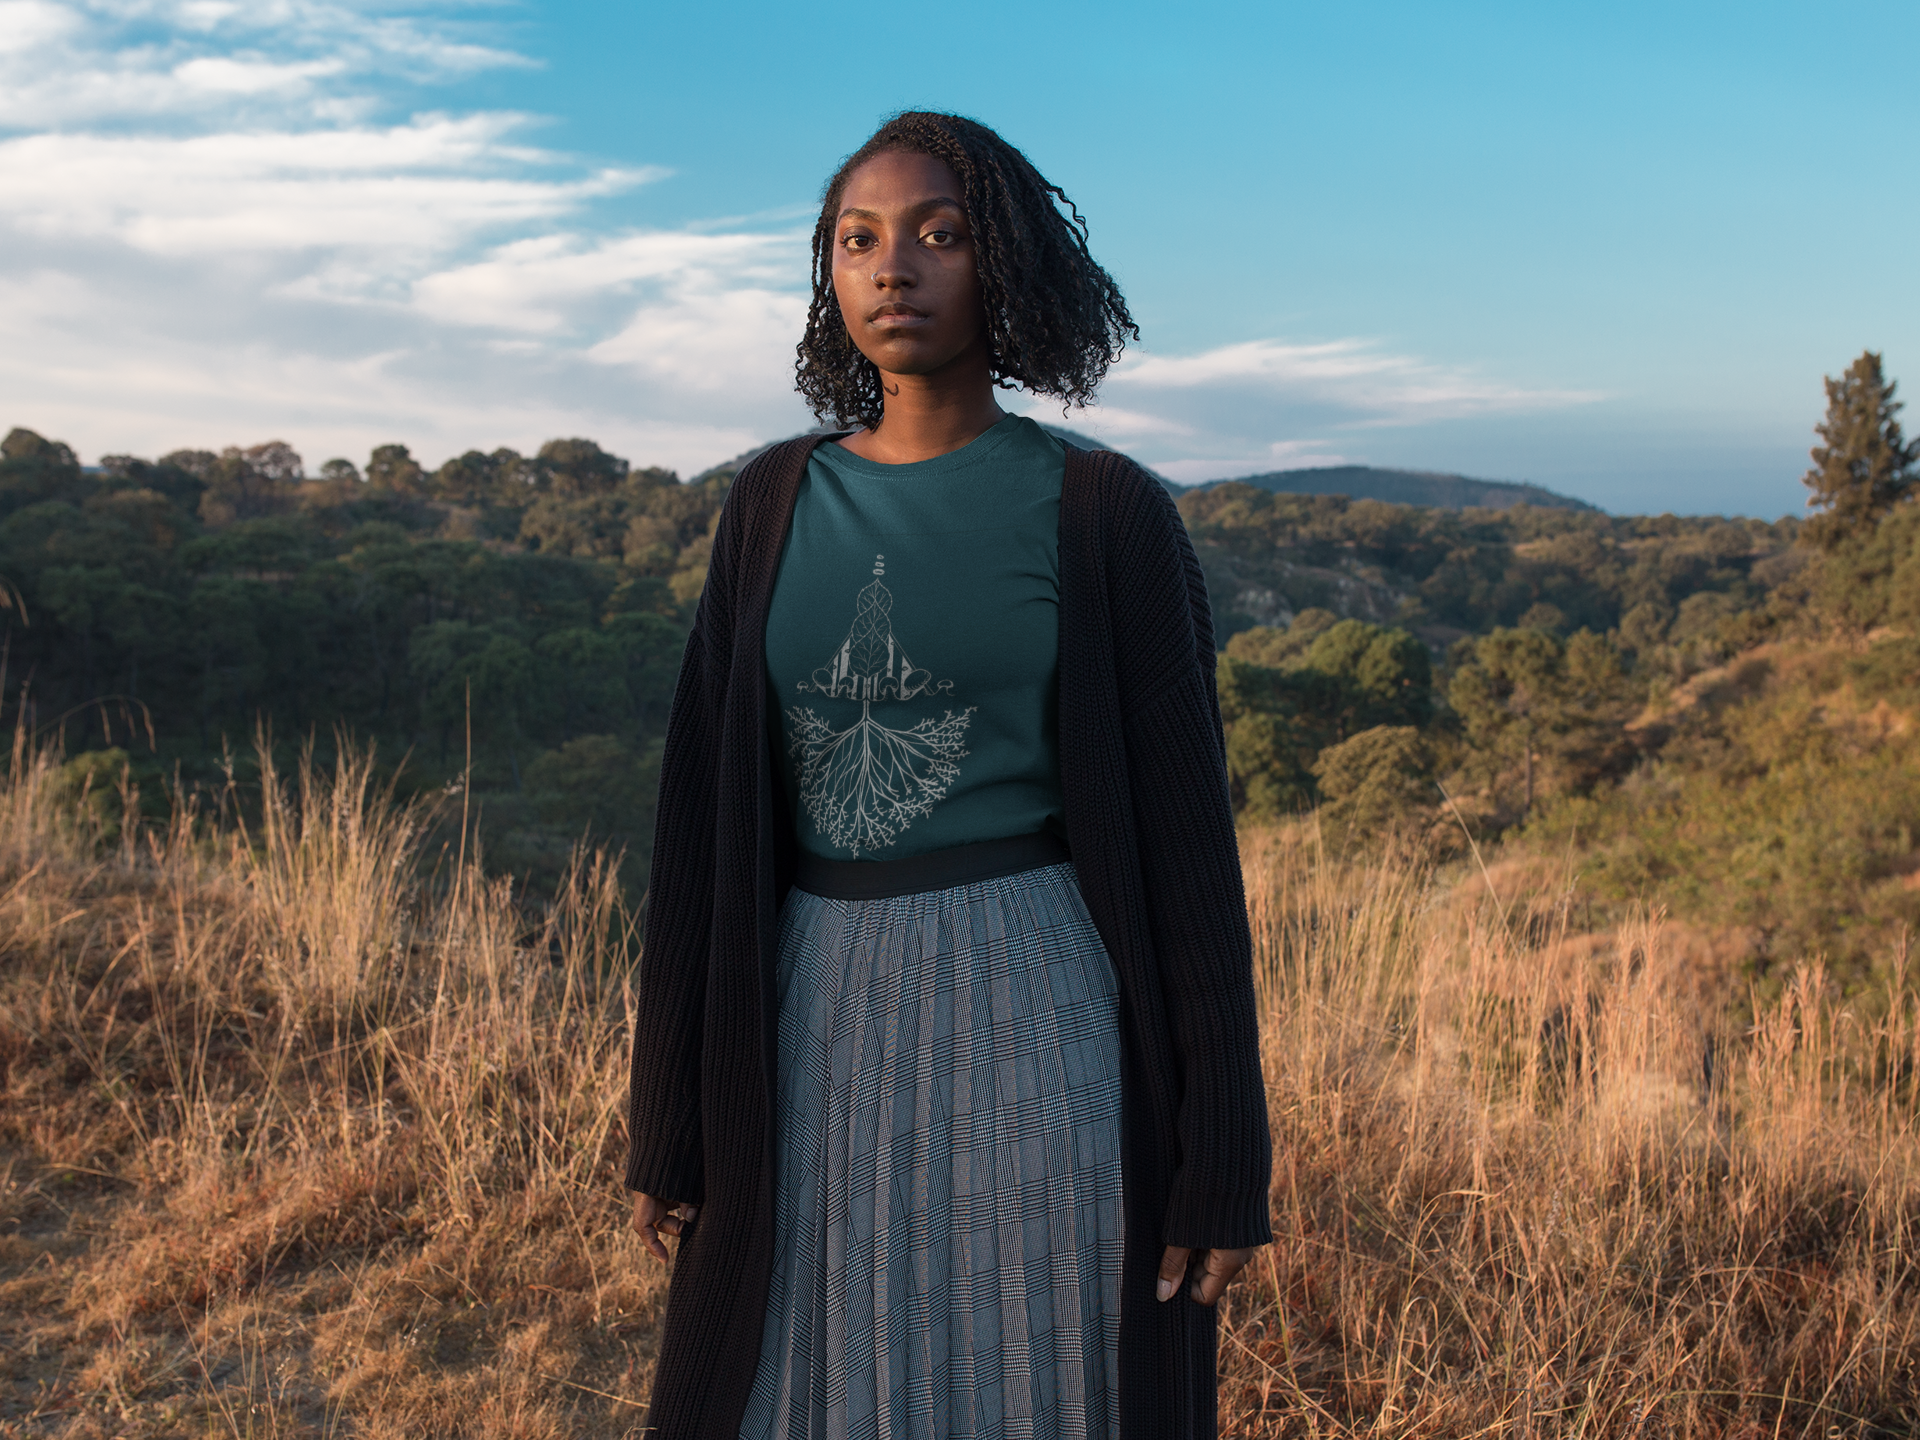 mockup-of-a-black-woman-wearing-a-tshirt-while-outdoors-on-the-mountains-a18514.png